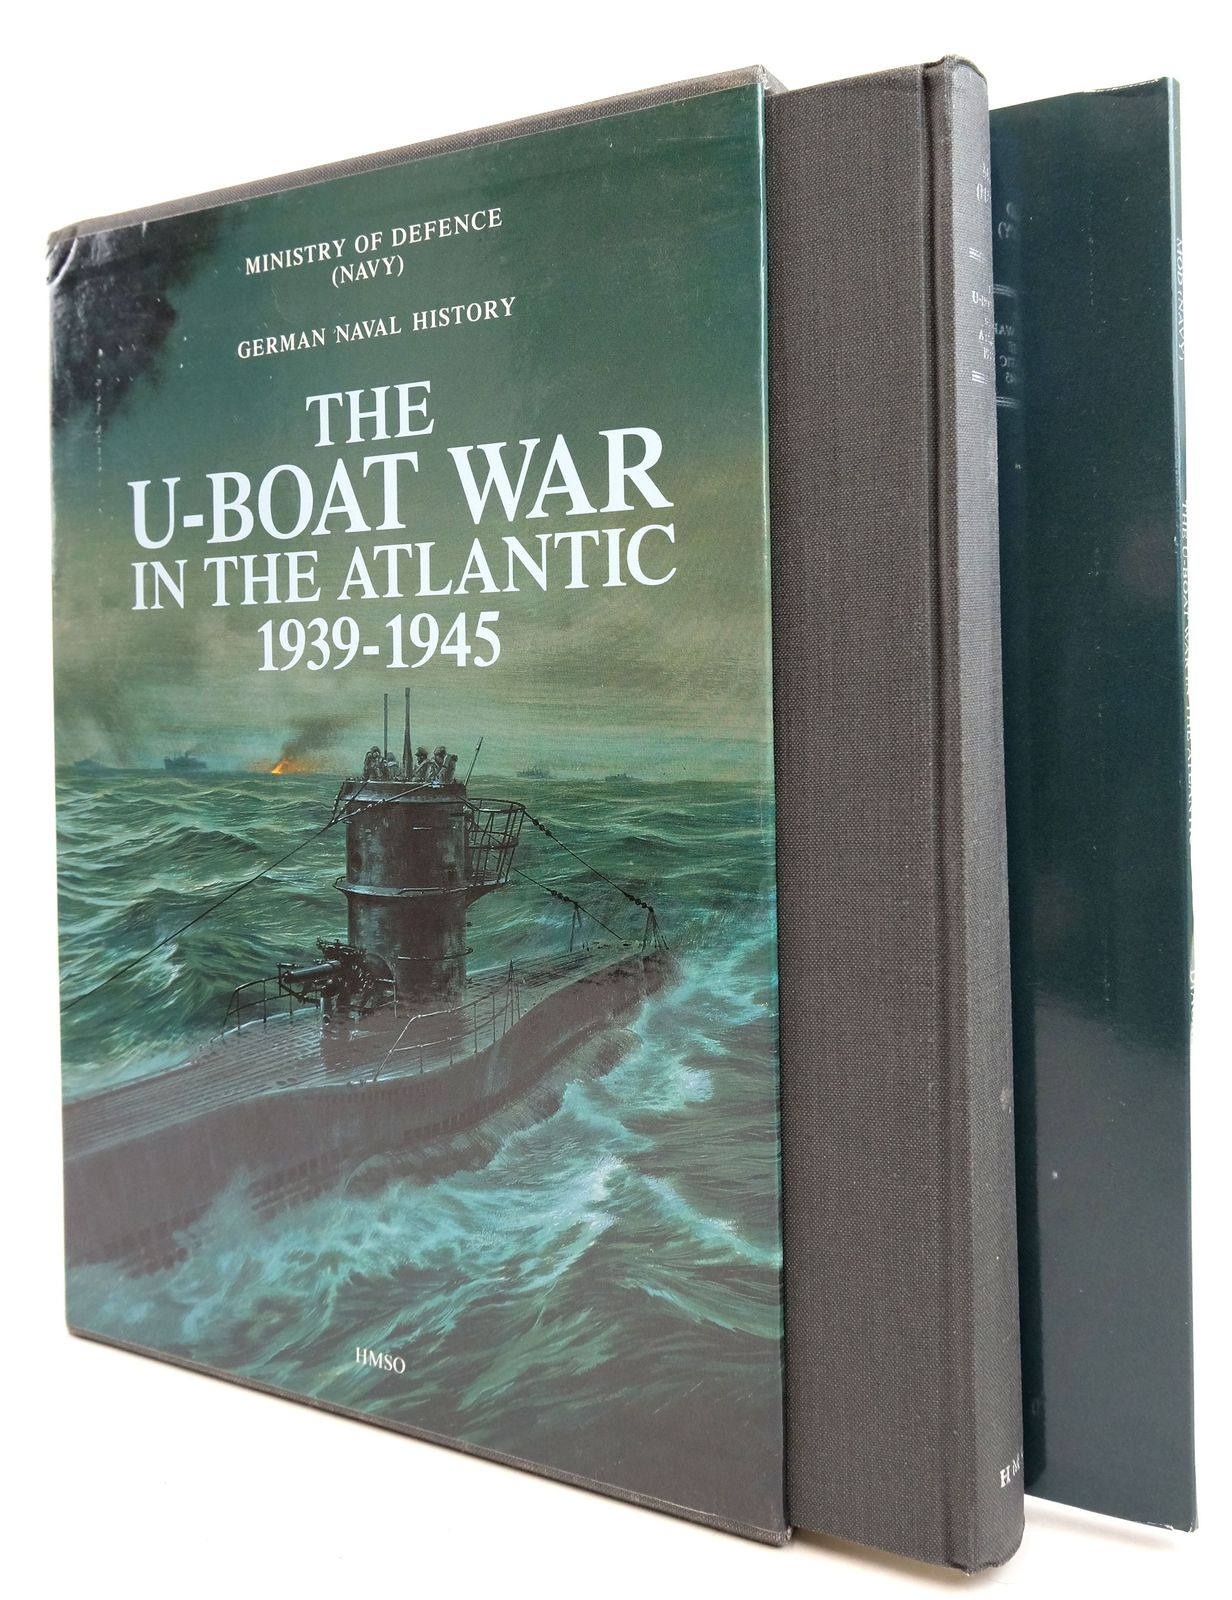 Photo of GERMAN NAVAL HISTORY: THE U-BOAT WAR IN THE ATLANTIC 1939 - 1945 written by Withers, Lt. Commander Andrew J. et al,  published by HMSO (STOCK CODE: 1819537)  for sale by Stella & Rose's Books